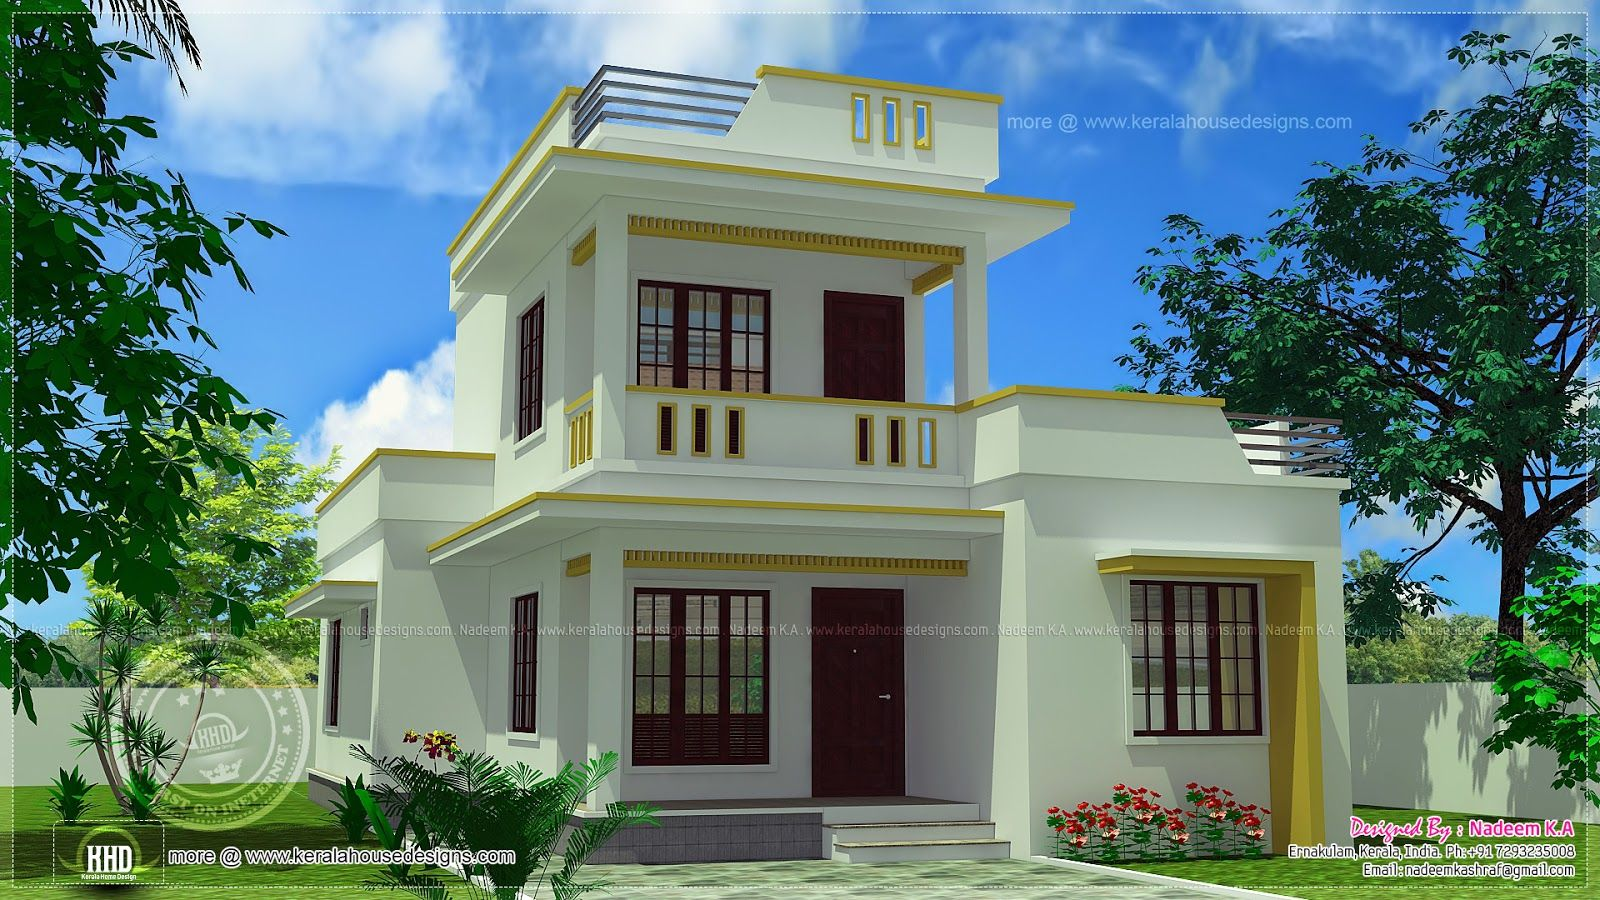 Roof home design feet kerala plans simple modern house for Modern kerala style house plans with photos